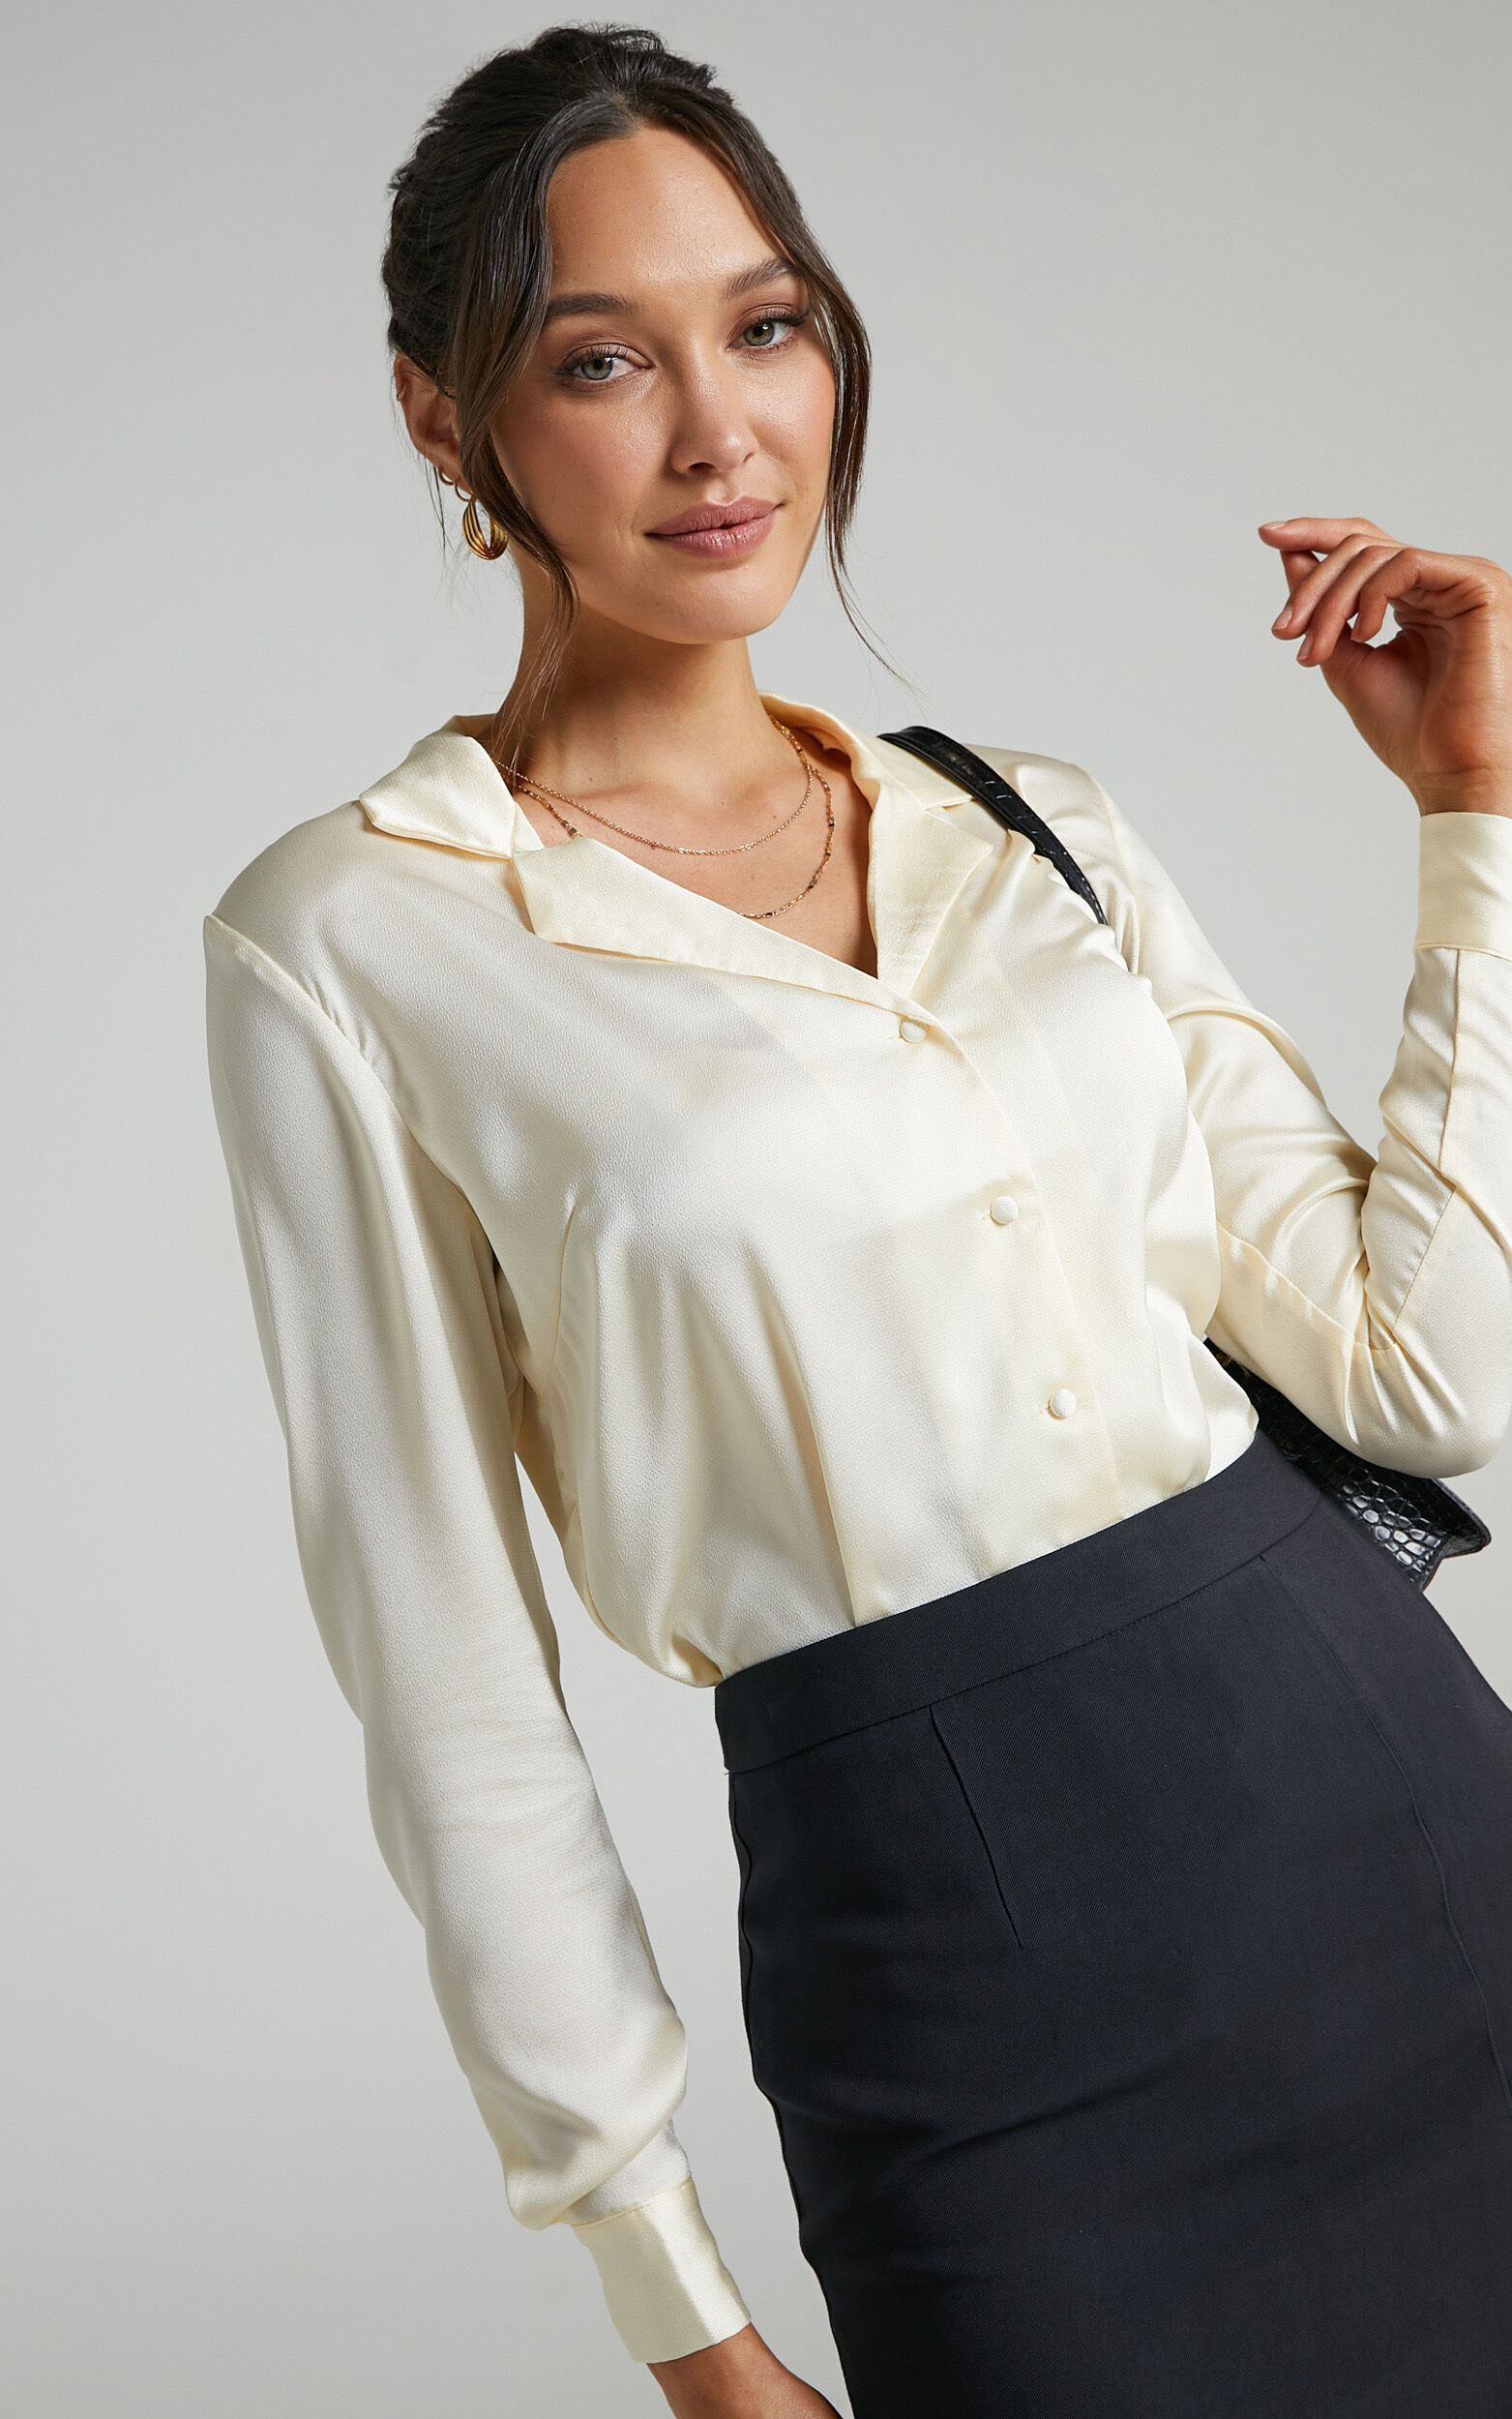 Tinna Longsleeve Satin Collared Button Up Shirt in Off White - 06, WHT1, super-hi-res image number null